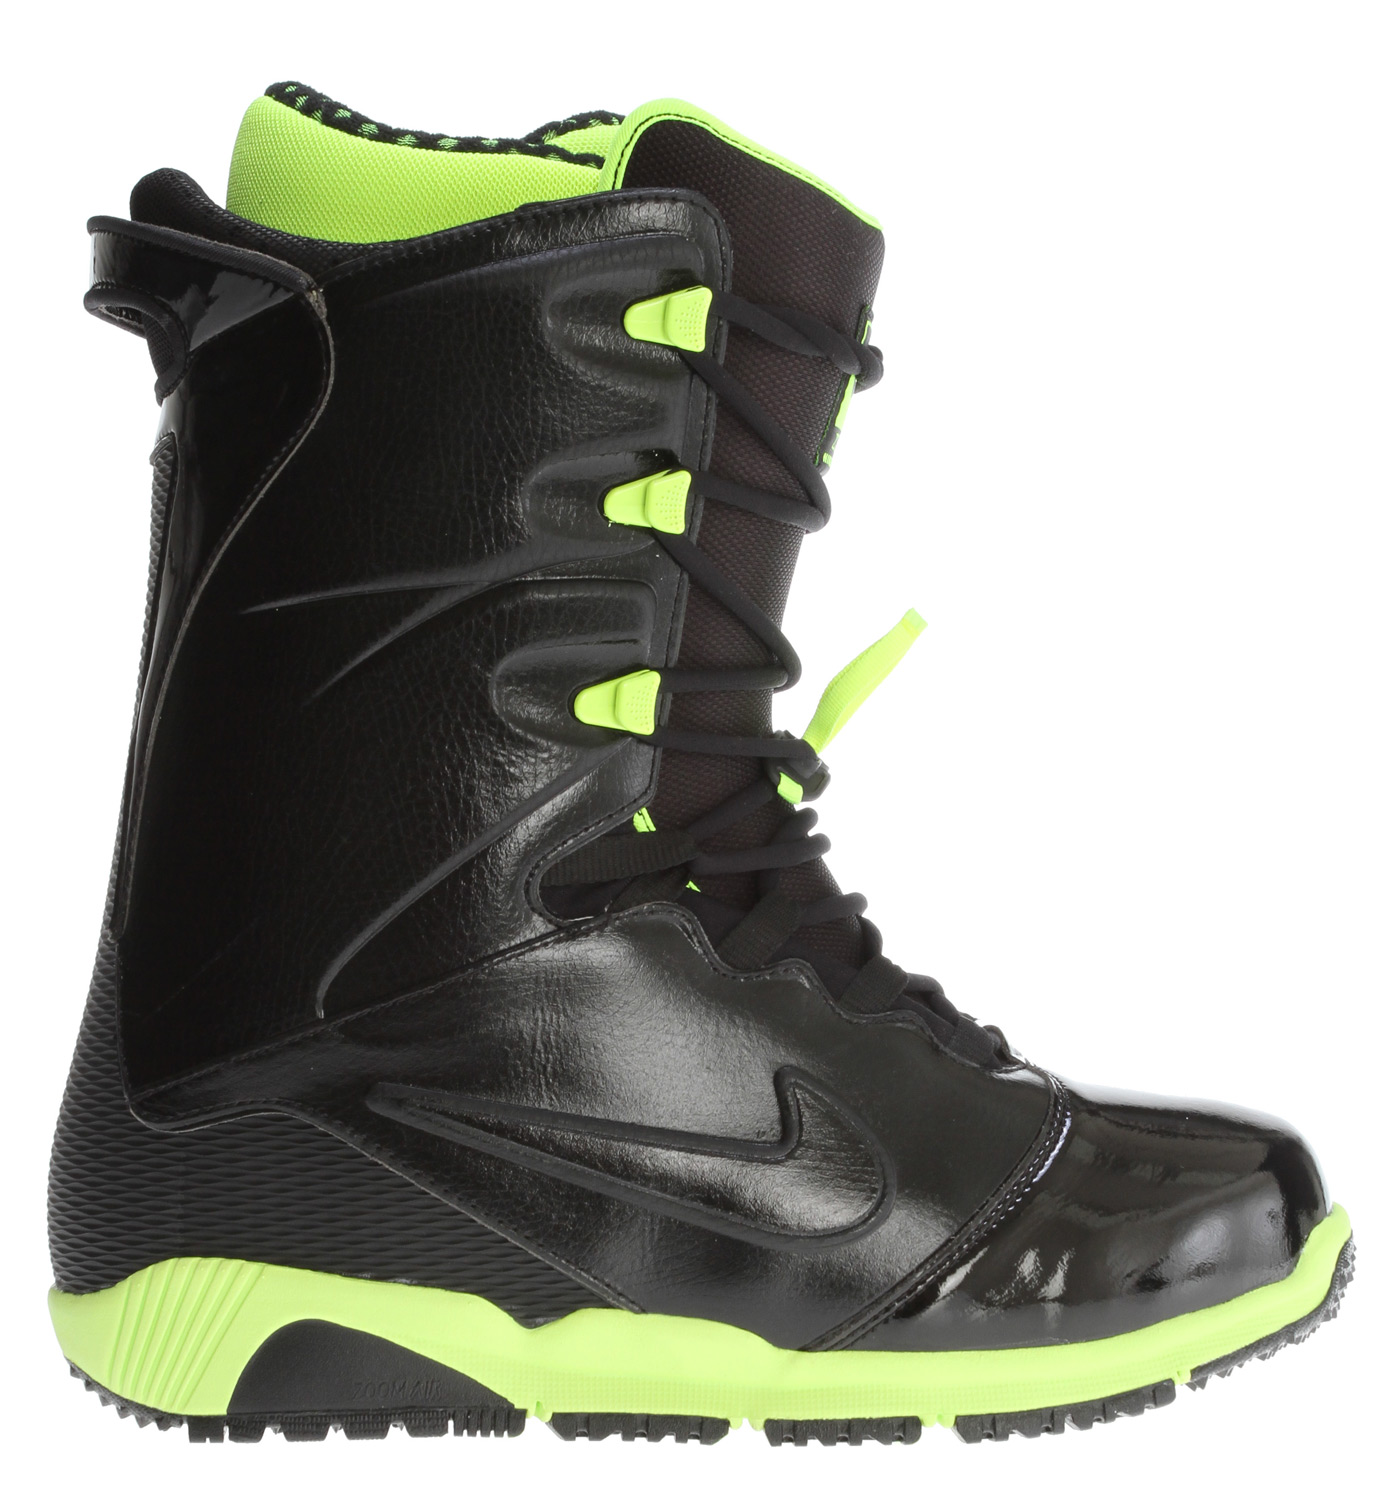 Snowboard Here's your chance to buy the Nike Zoom Ites snowboard boot for 2013 in an awesome black/volt yellow colorway. Quite possibly the most advanced boot ever produced for snowboarding, the snow design team at Nike spared no expense on the Ites. Drawing it's inspiration from both the best-selling Zoom Kaiju boot and Nike's running heritage, the fit is amazing. Couple that with the Ites' unique flex-control system and you're experiencing a revolution in snowboard footwear. The Zoom Ites - quite possibly the last boot you'll ever need! Key Features of the Nike Zoom Ites Snowboard Boots: Flex control system for custom performance tailored to your riding style Fully synthetic leathers with flex notches and external TPU backstay Flywire technology internal lacing harness Outlast temperature control technology Webbing lace system with neoprene eyestay for ease of tightening Nike Snowboarding lace-lock for zonal tightening and support No seam on toe for added longetivity and resillience Space Blanket strobel construction for added warmth and enhanced fit Midsole: Phylon with embedded Nike Zoom unit Outsole: Nike Free inspired siped rubber Support: 6-8 out of 10 (depending on positioning of custom flex control system) - $279.95